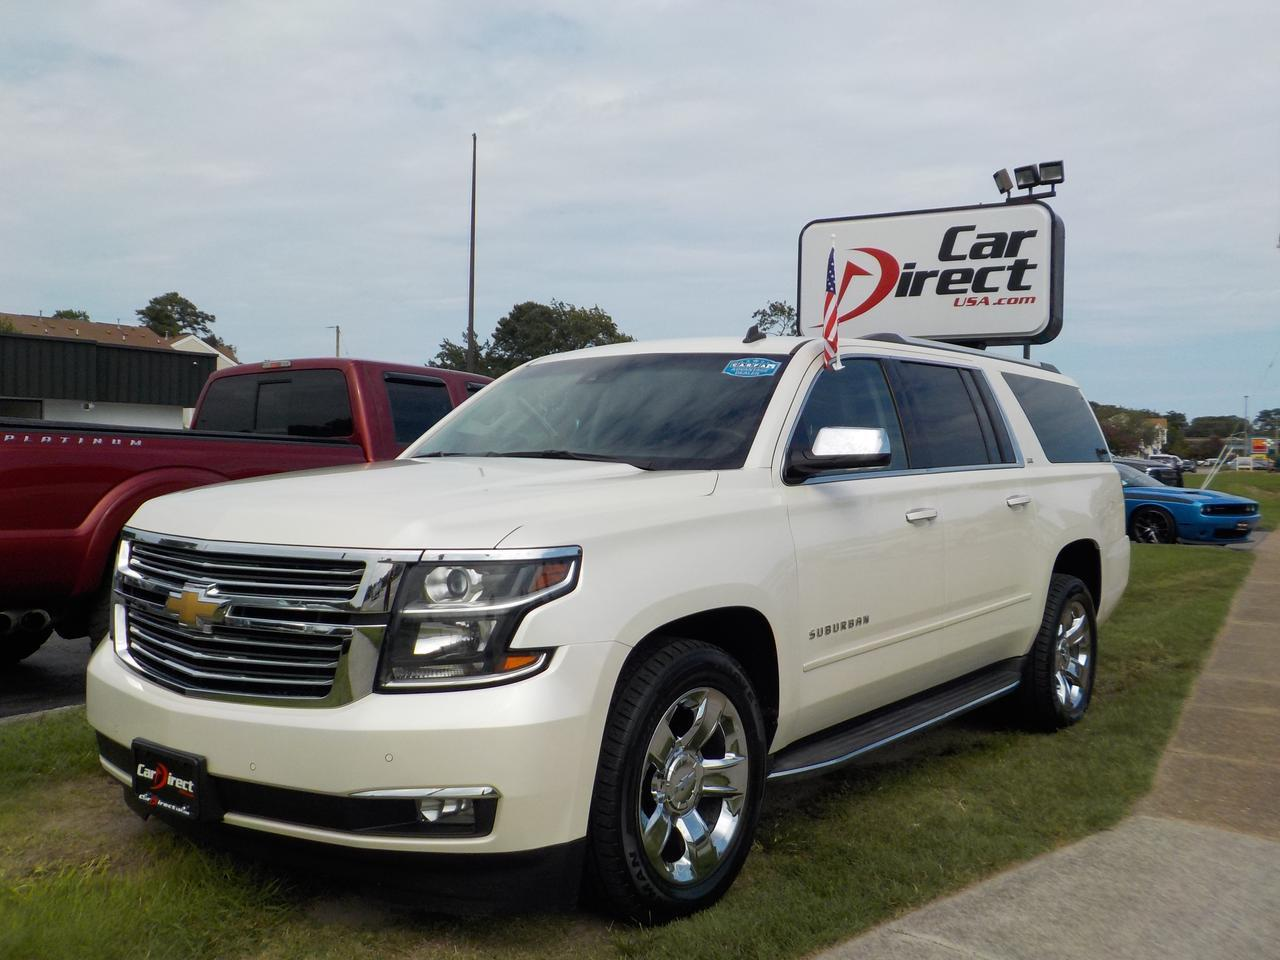 2015 CHEVROLET SUBURBAN LTZ 4X4, LEATHER, SUNROOF, REMOTE START, DVD PLAYER, HEATED/COOLED SEATS, BLUETOOTH, CLEAN CARFAX! Virginia Beach VA